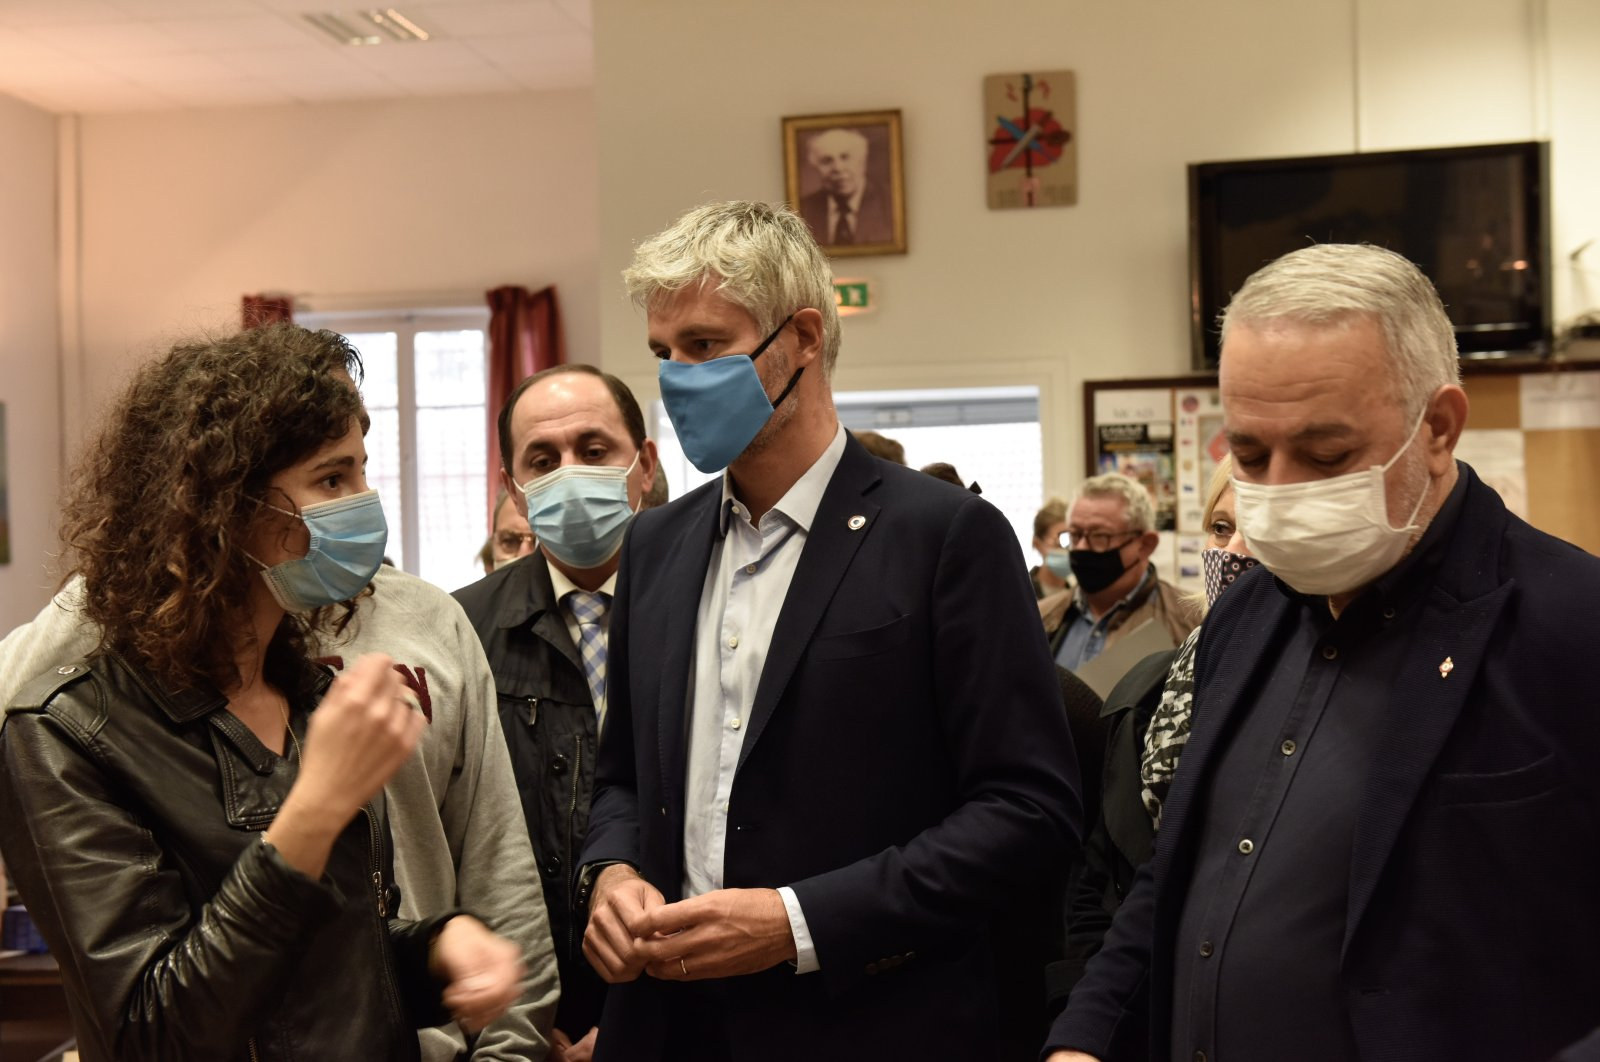 French politician Laurent Wauquiez (C) talks with other attendees of an event in the Auvergne-Rhone-Alpes region of France, in a photo shared Oct. 6, 2020. (Photo from Twitter @laurentwauquiez)